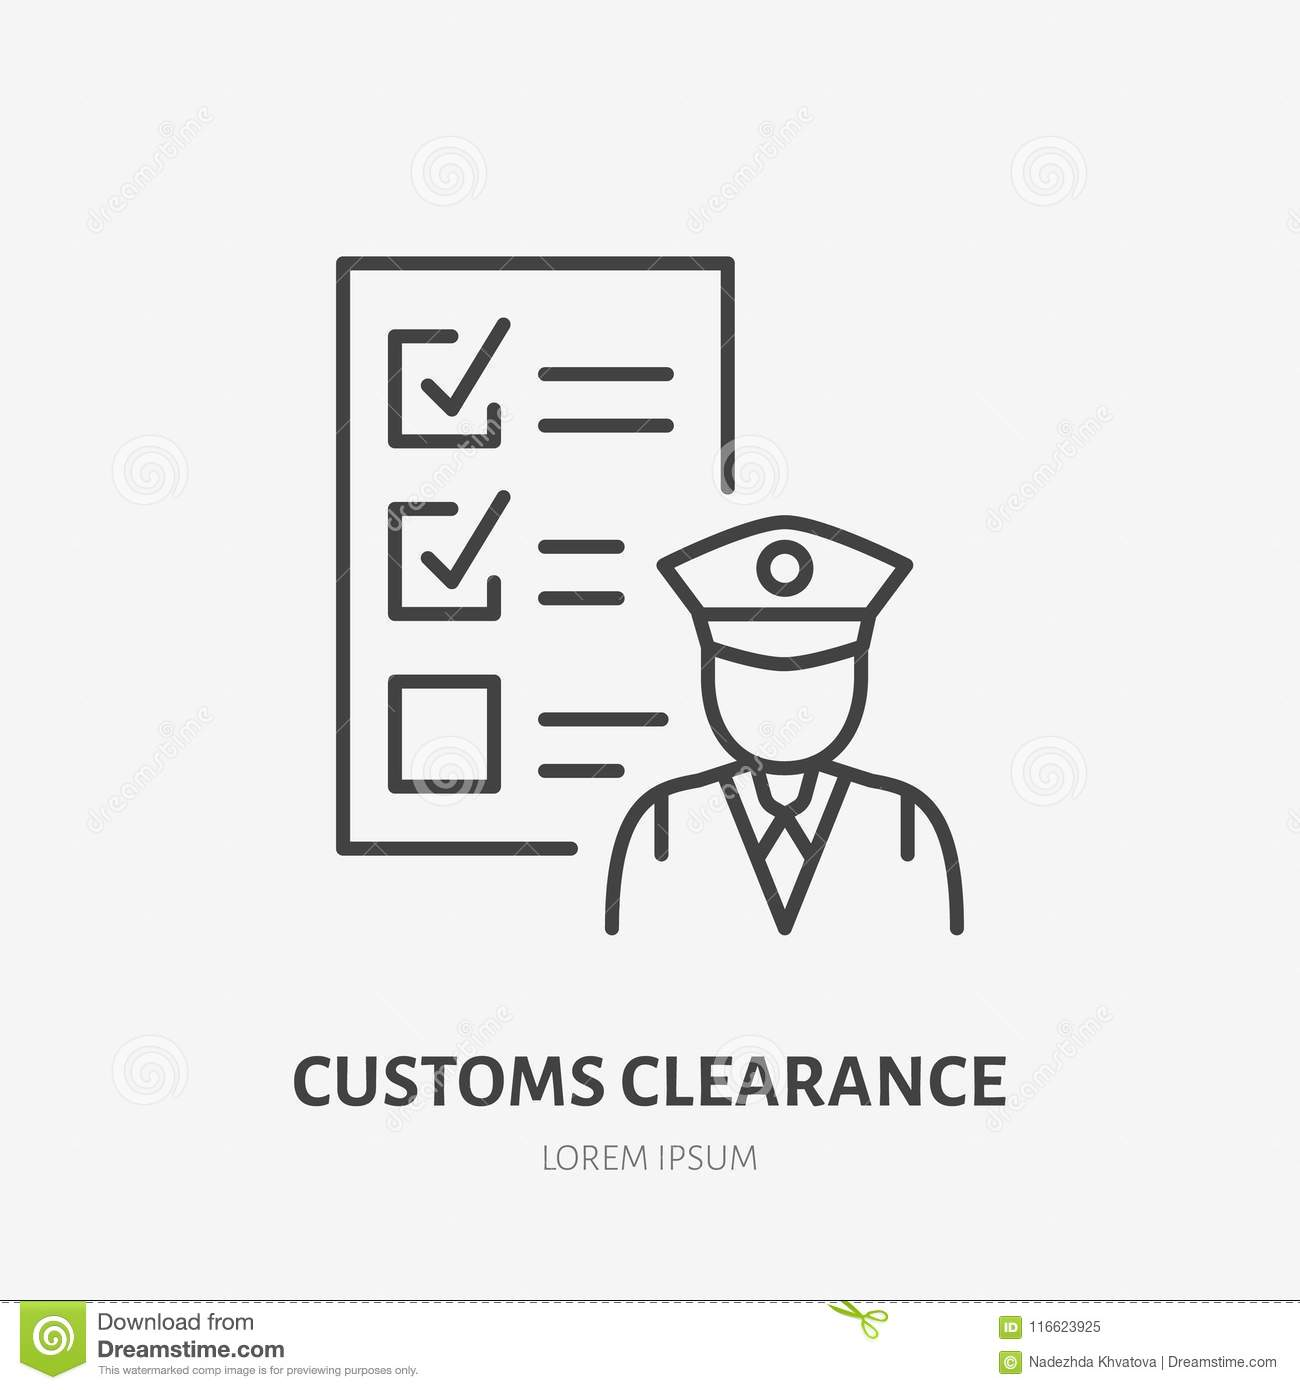 Customs clearance flat line icon. Policeman inspecting luggage sign. Thin linear logo for cargo trucking, freight